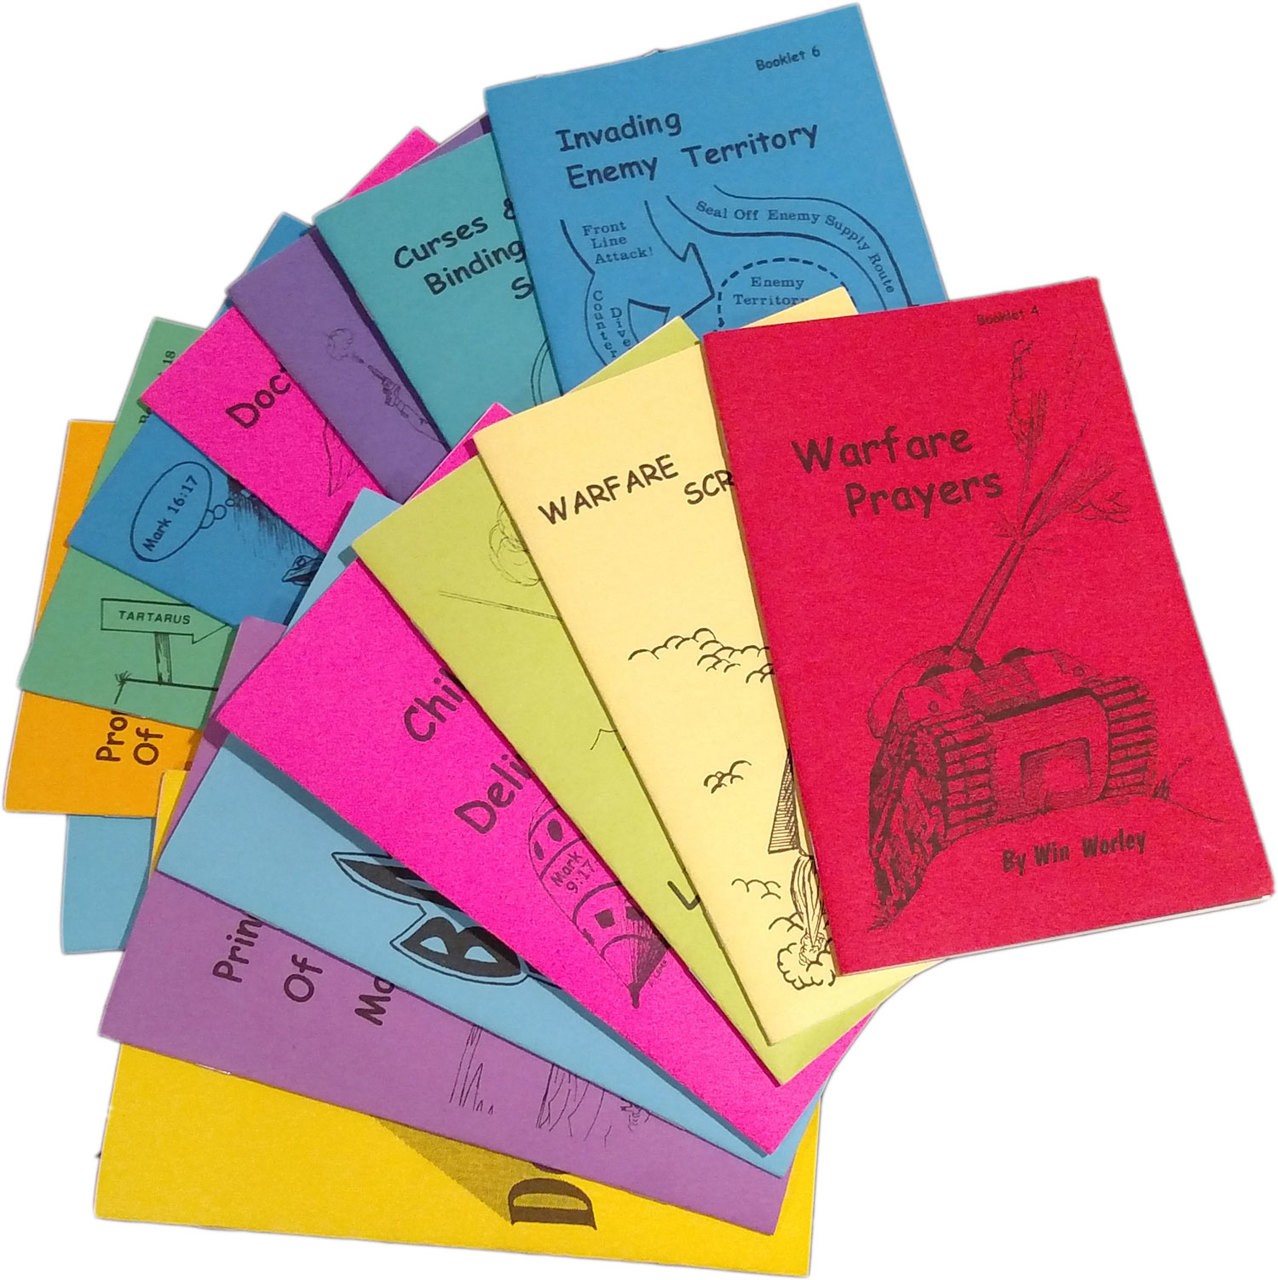 Win Worley Booklets - Complete Set